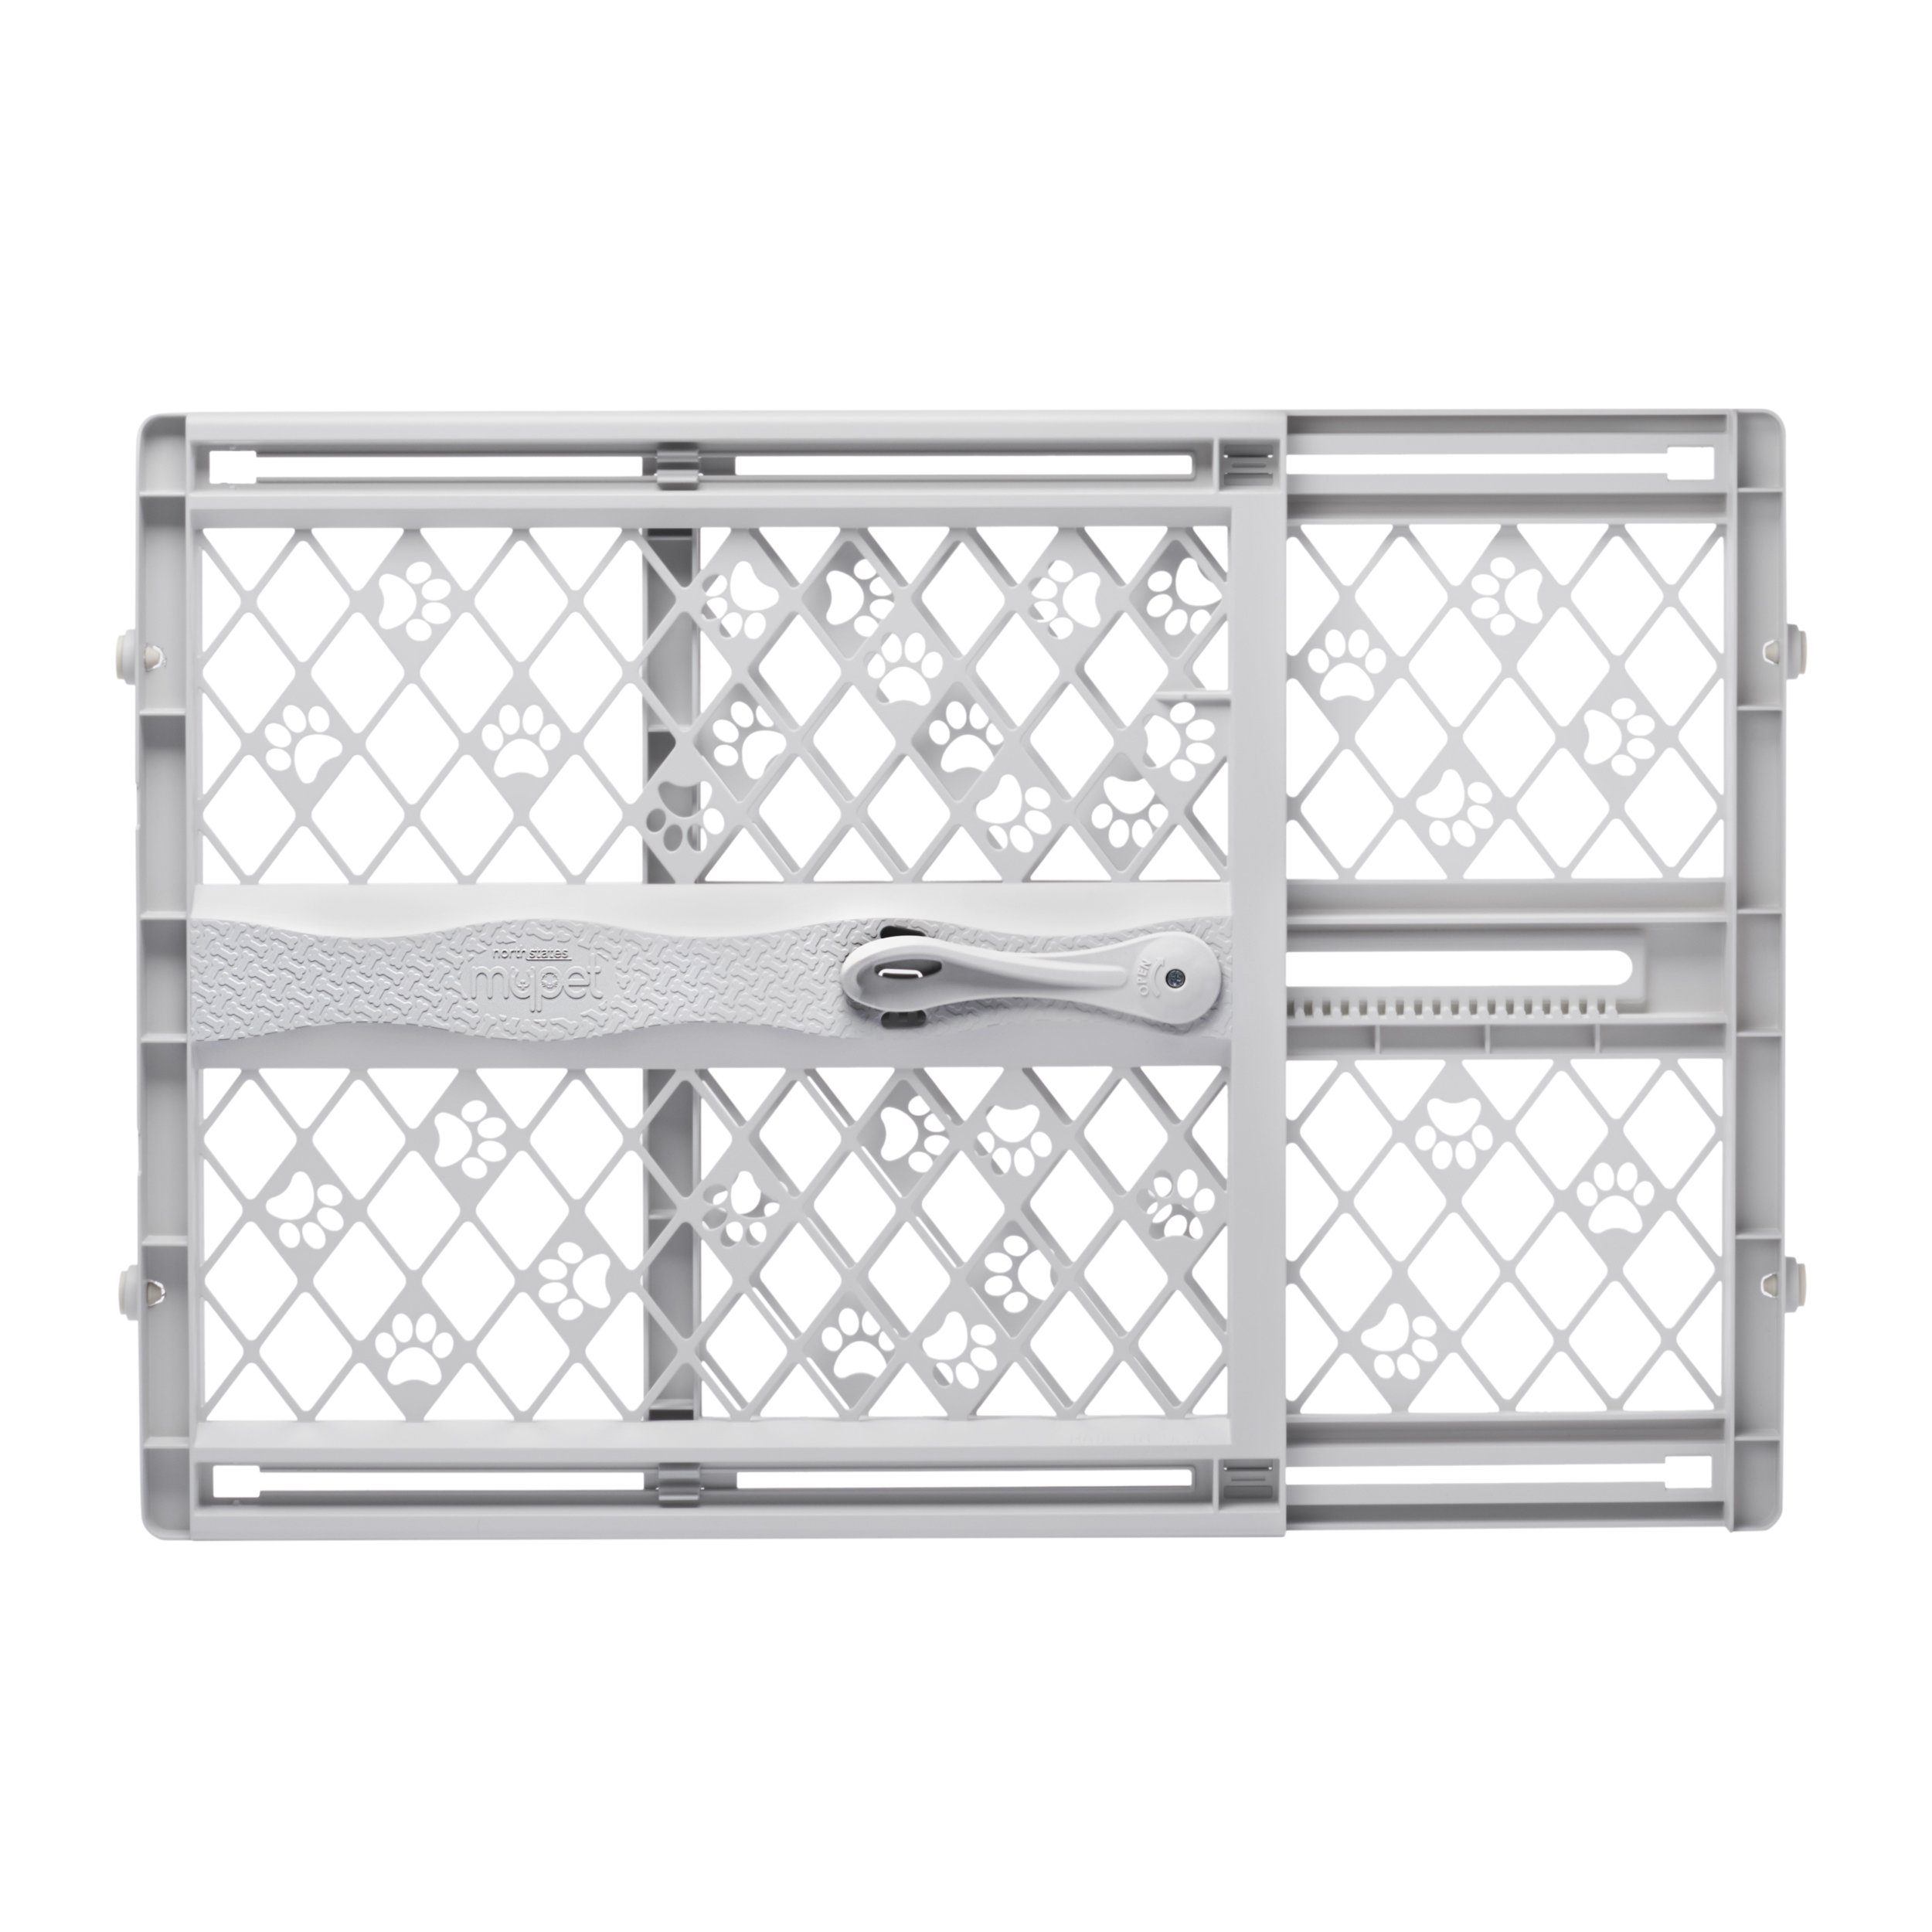 North States Pet MyPet Paws Portable Pet Gate fits Openings 26'' to 42'' Wide by North States Pet (Image #1)